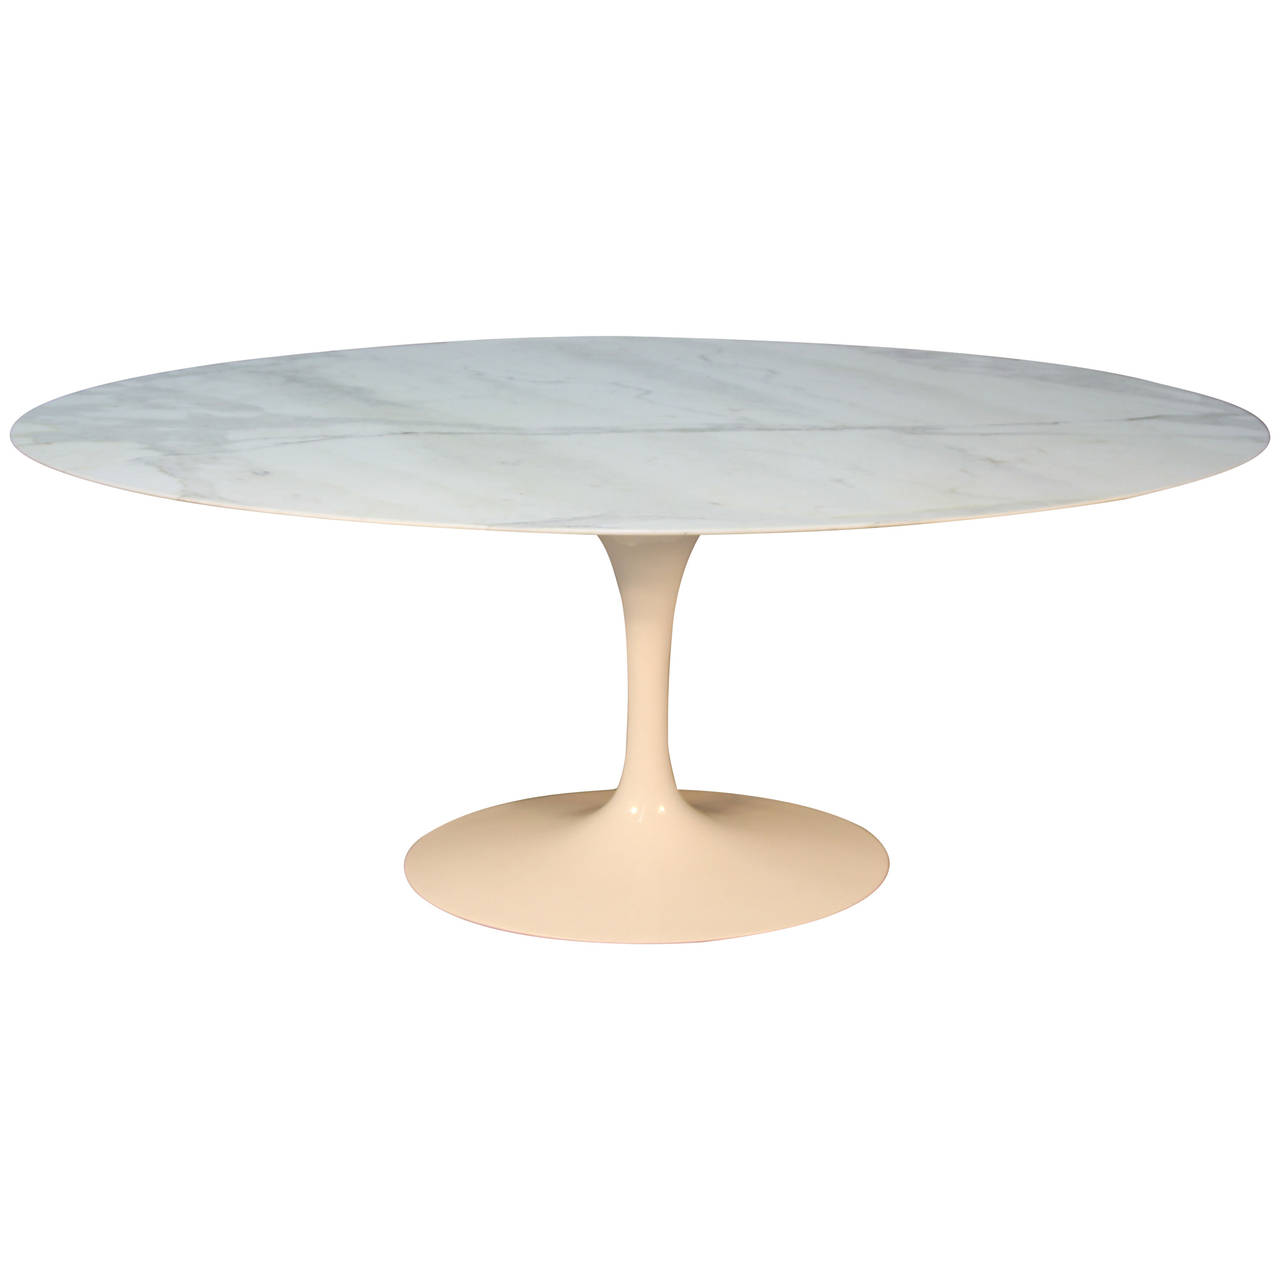 Picture of: Saarinen Oval Dining Table Design